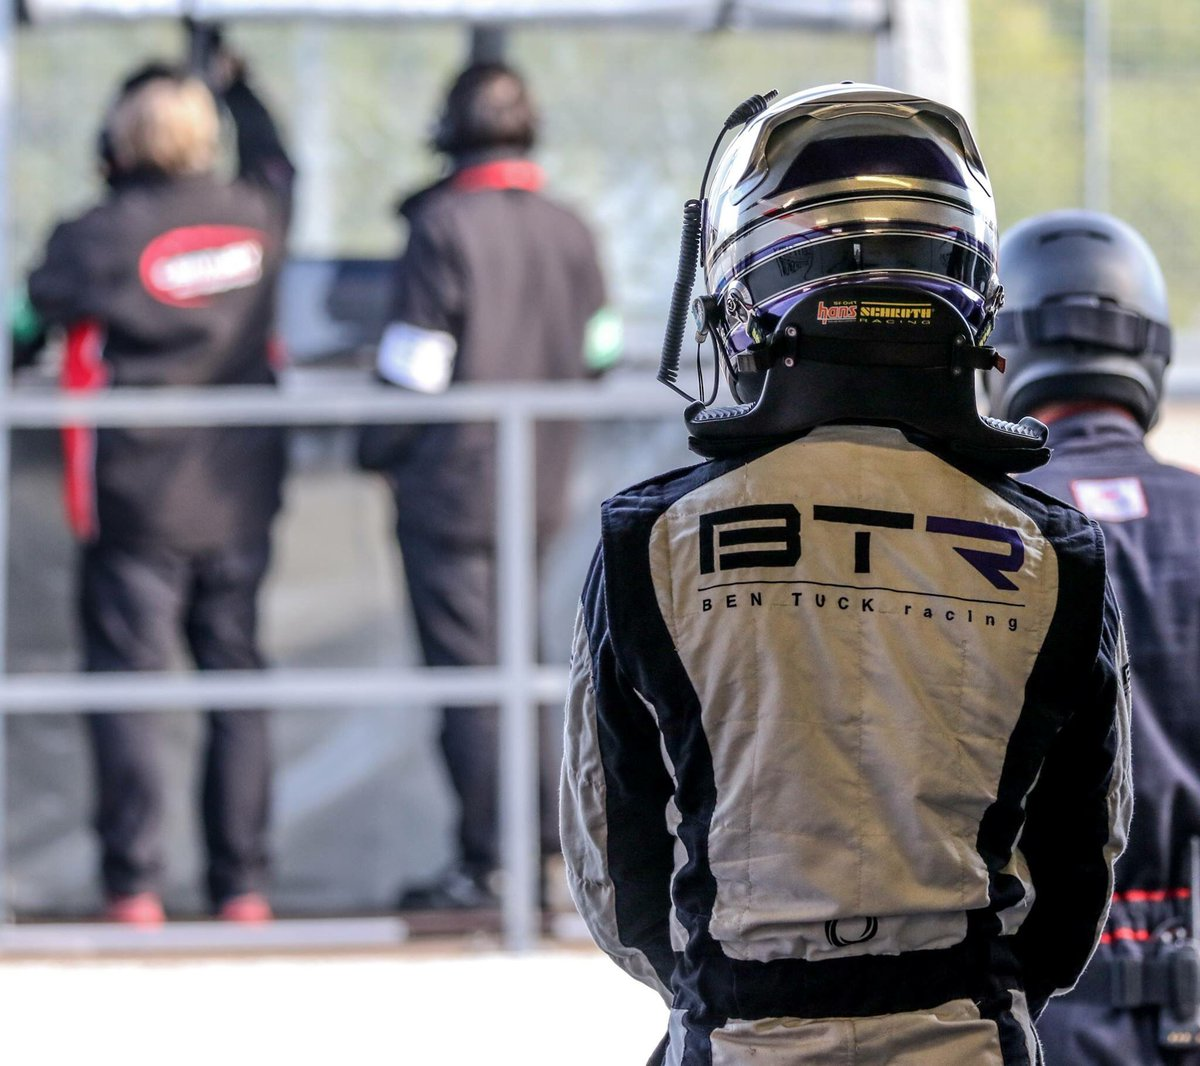 Sorry for the 'radio silence' recently, we're still working hard behind the scenes here at BTR to make next years plans happen! Already bored of the winter break and it's not even Christmas yet!😴💭🏎🏁 #TeamBTR📸Photo credit: @MatActon📸